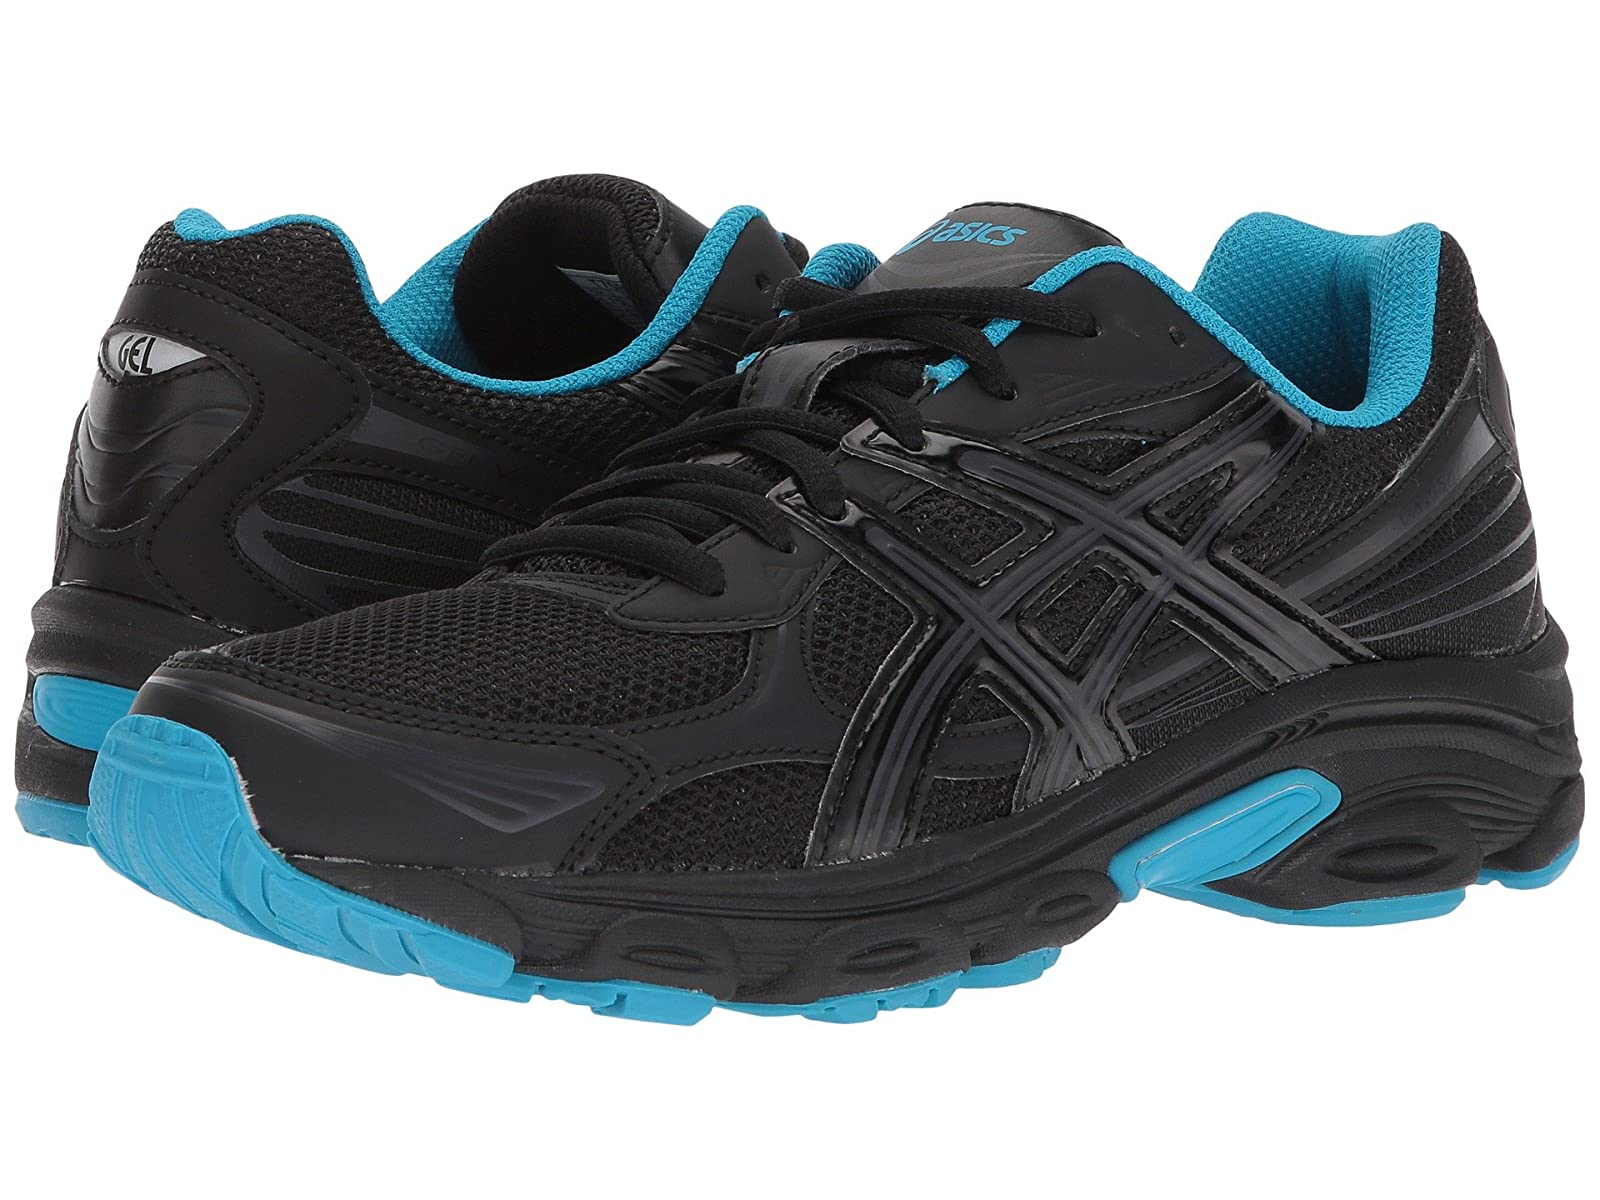 ASICS GEL-VanisherCheap and distinctive eye-catching shoes